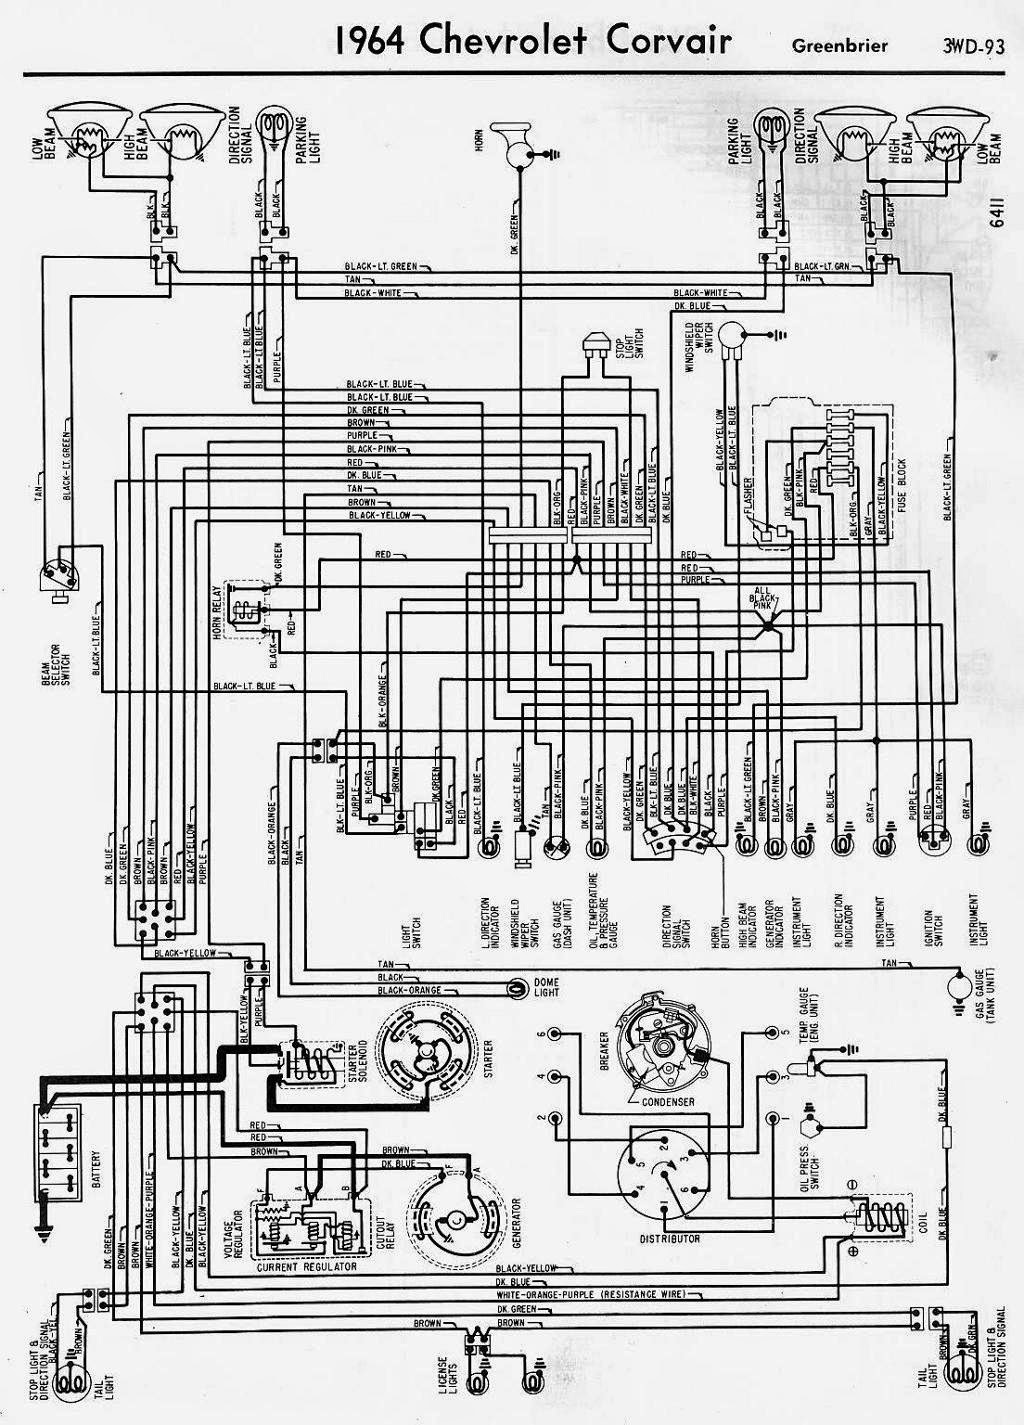 1963 impala wiring diagram for two way light switch corvair spyder diagrams free engine